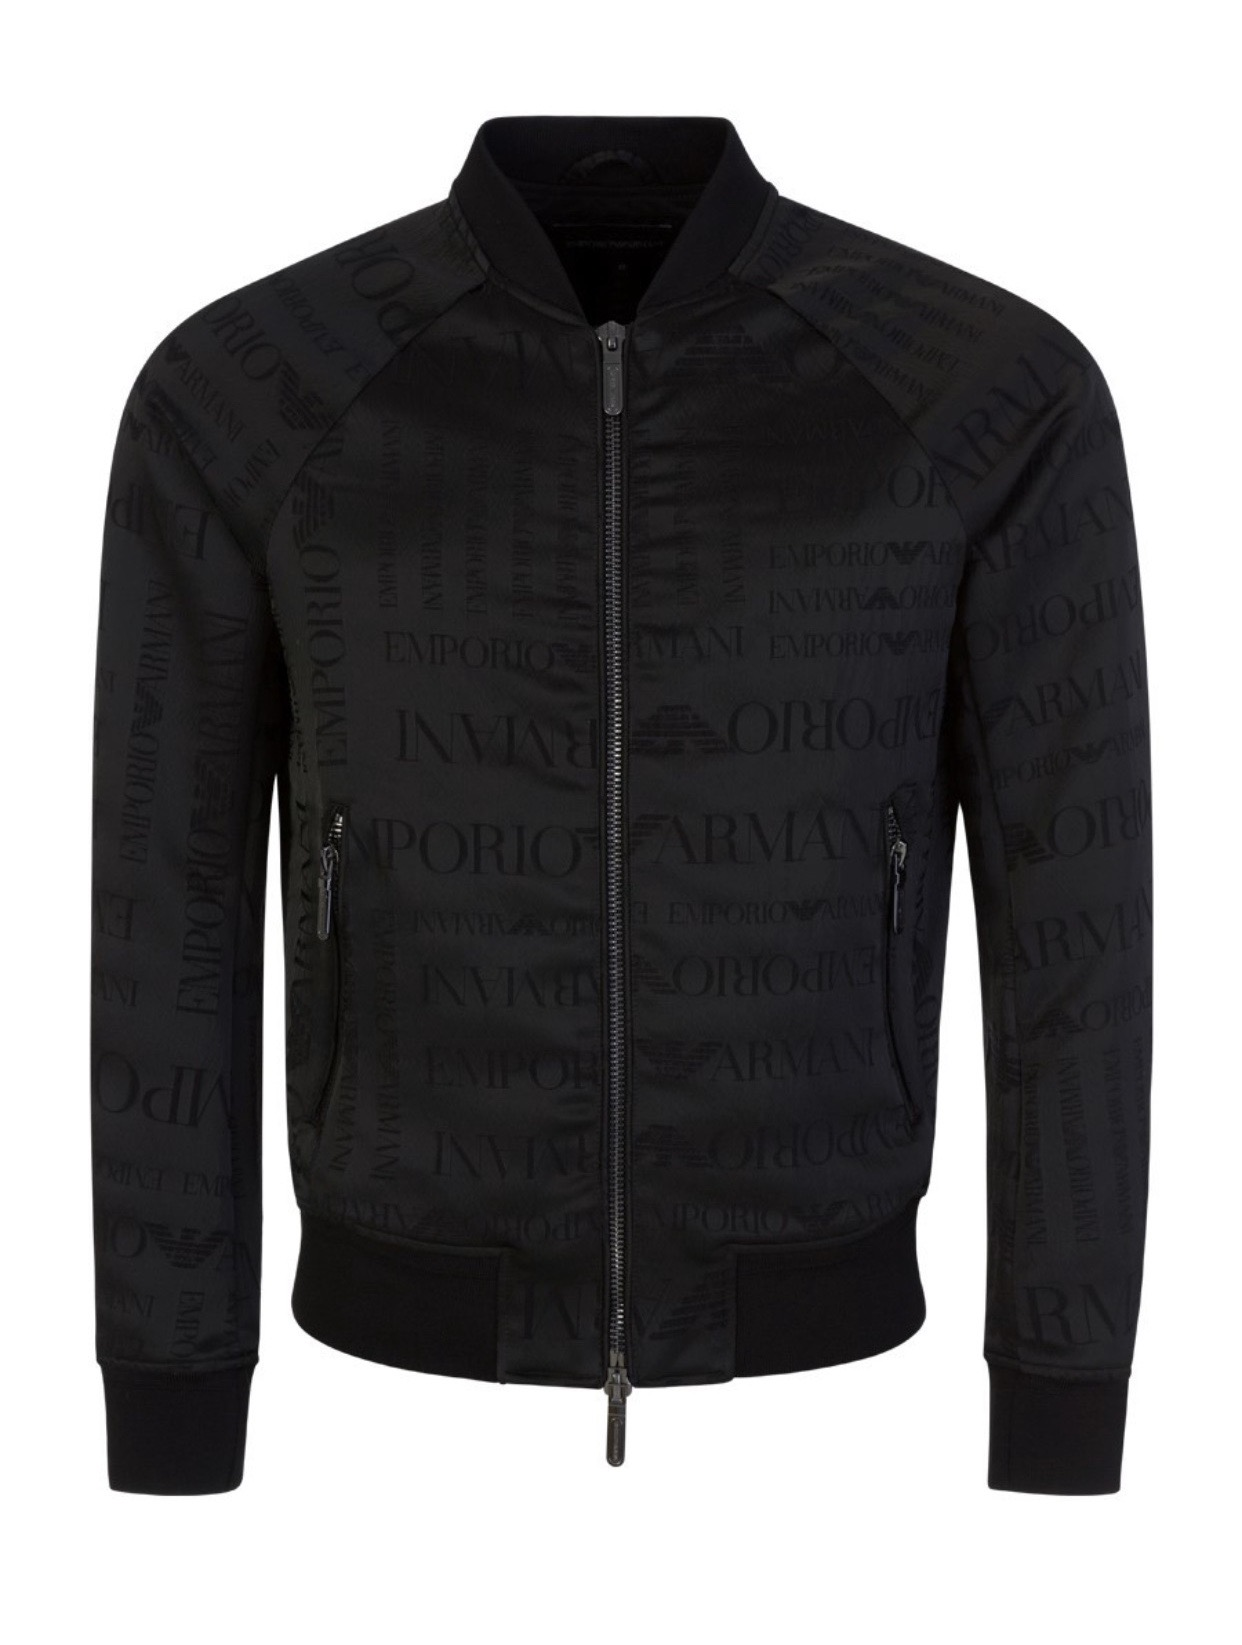 Bomber jacket with jacquard lettering